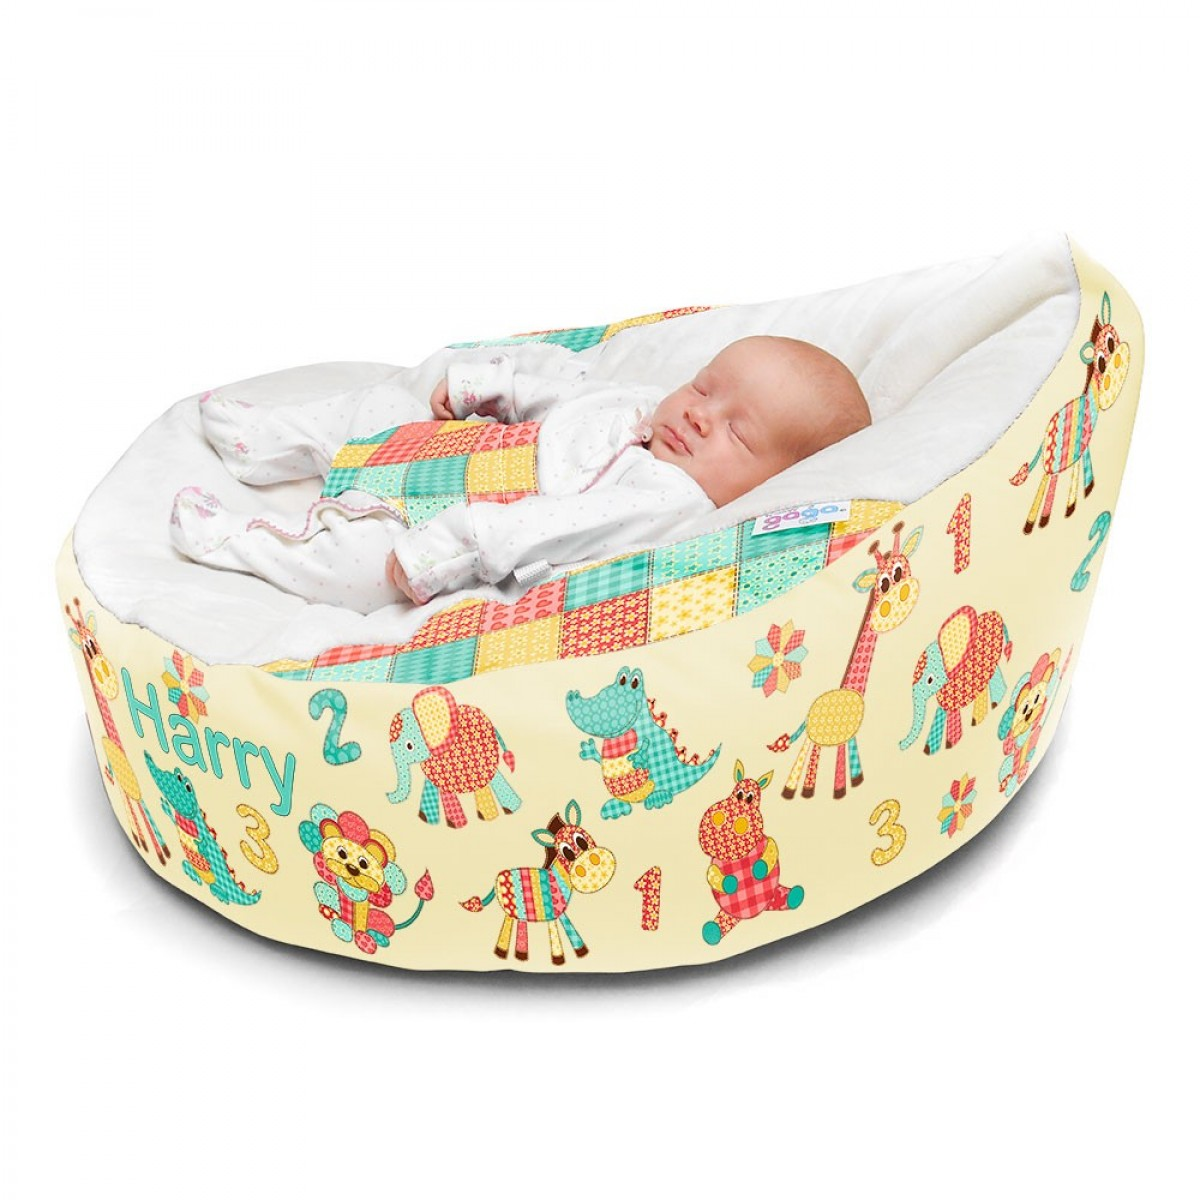 Marvelous Pros And Cons To Choosing A Baby Bean Bag For Your Child Pabps2019 Chair Design Images Pabps2019Com